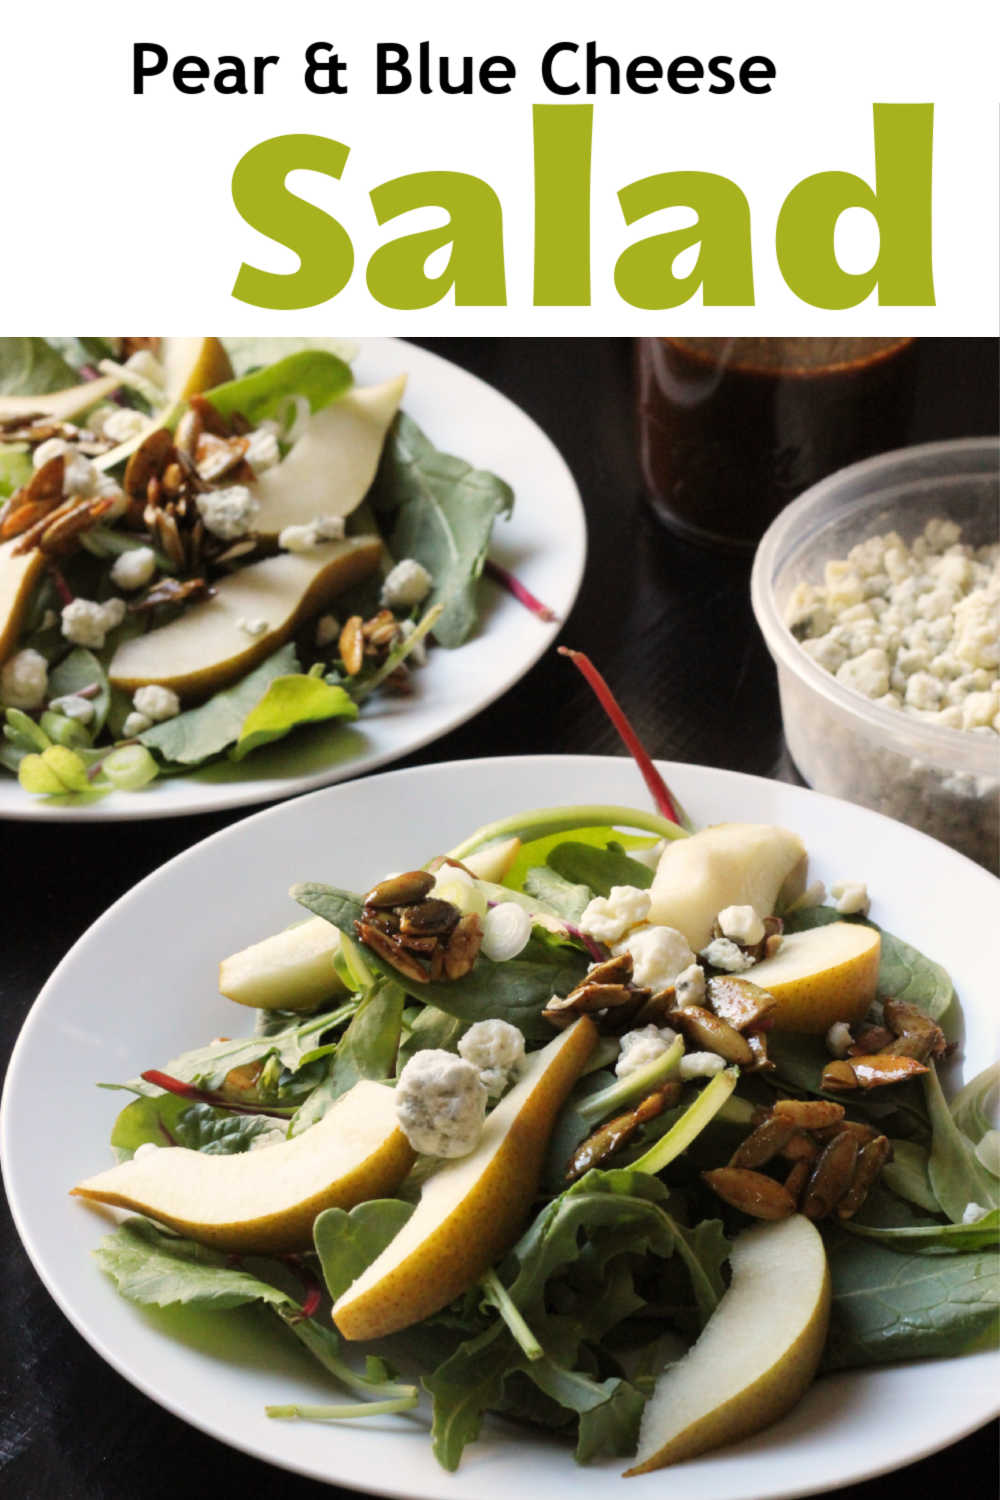 Salads with pears and cheese